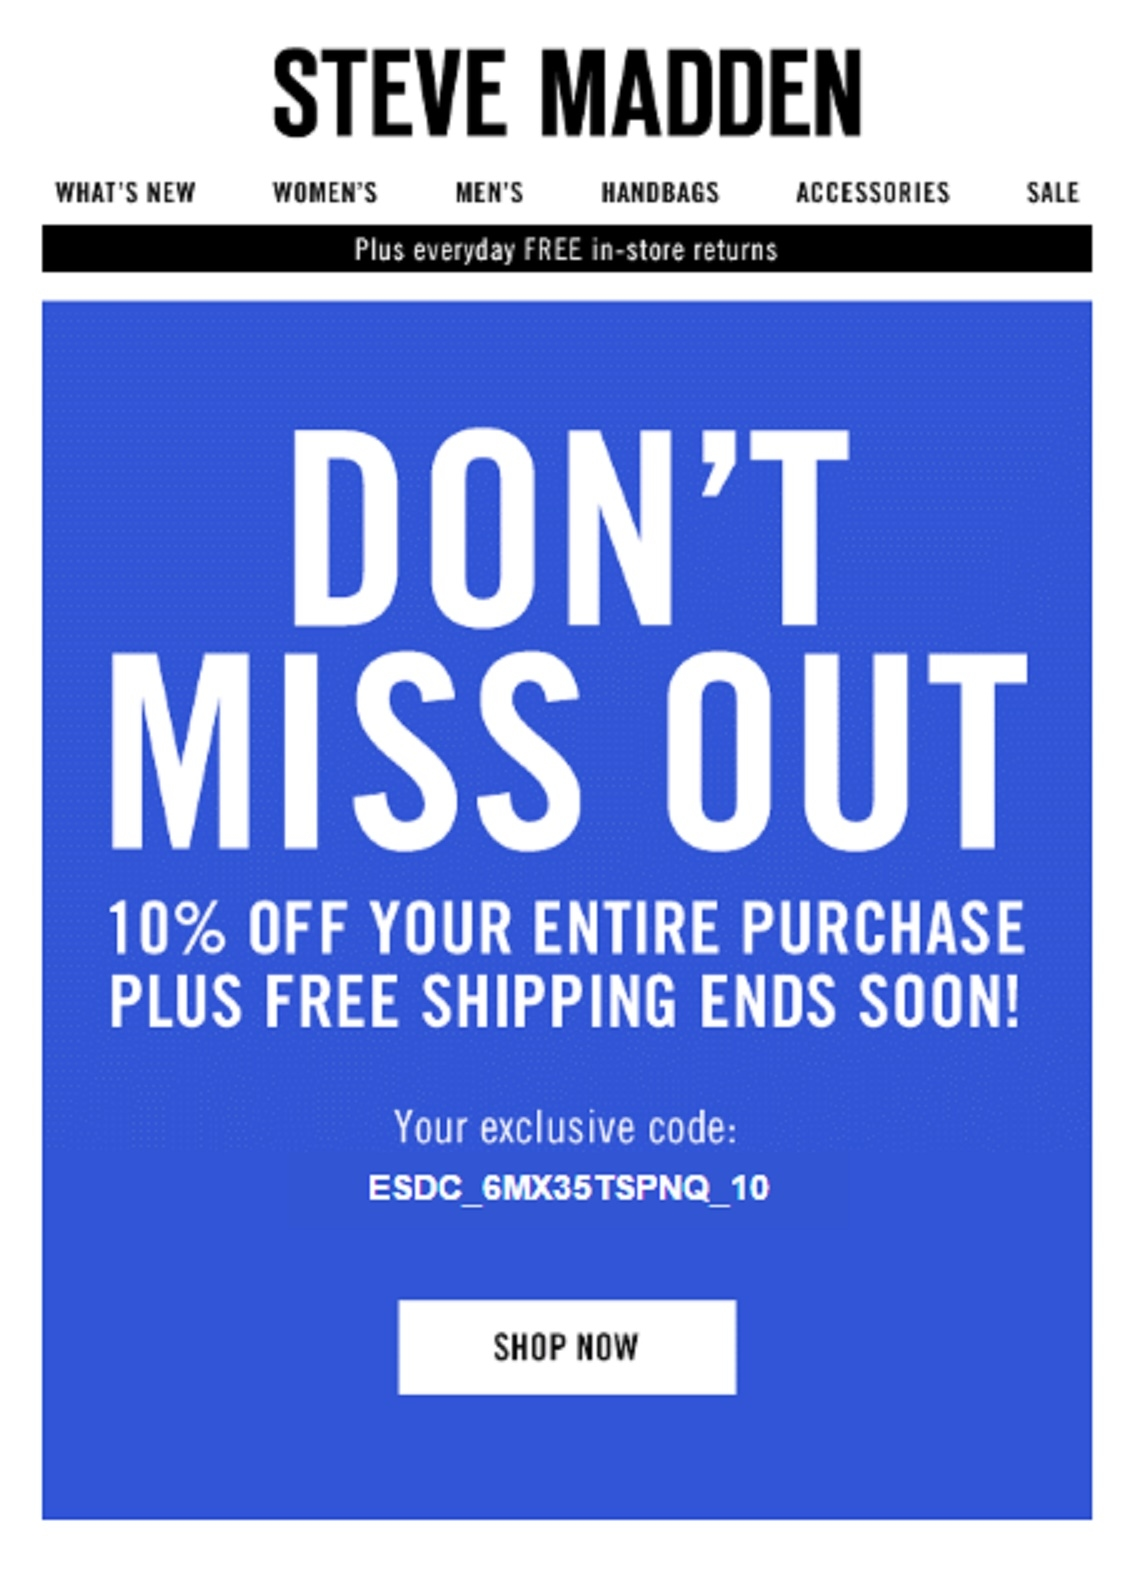 printable coupons steve madden